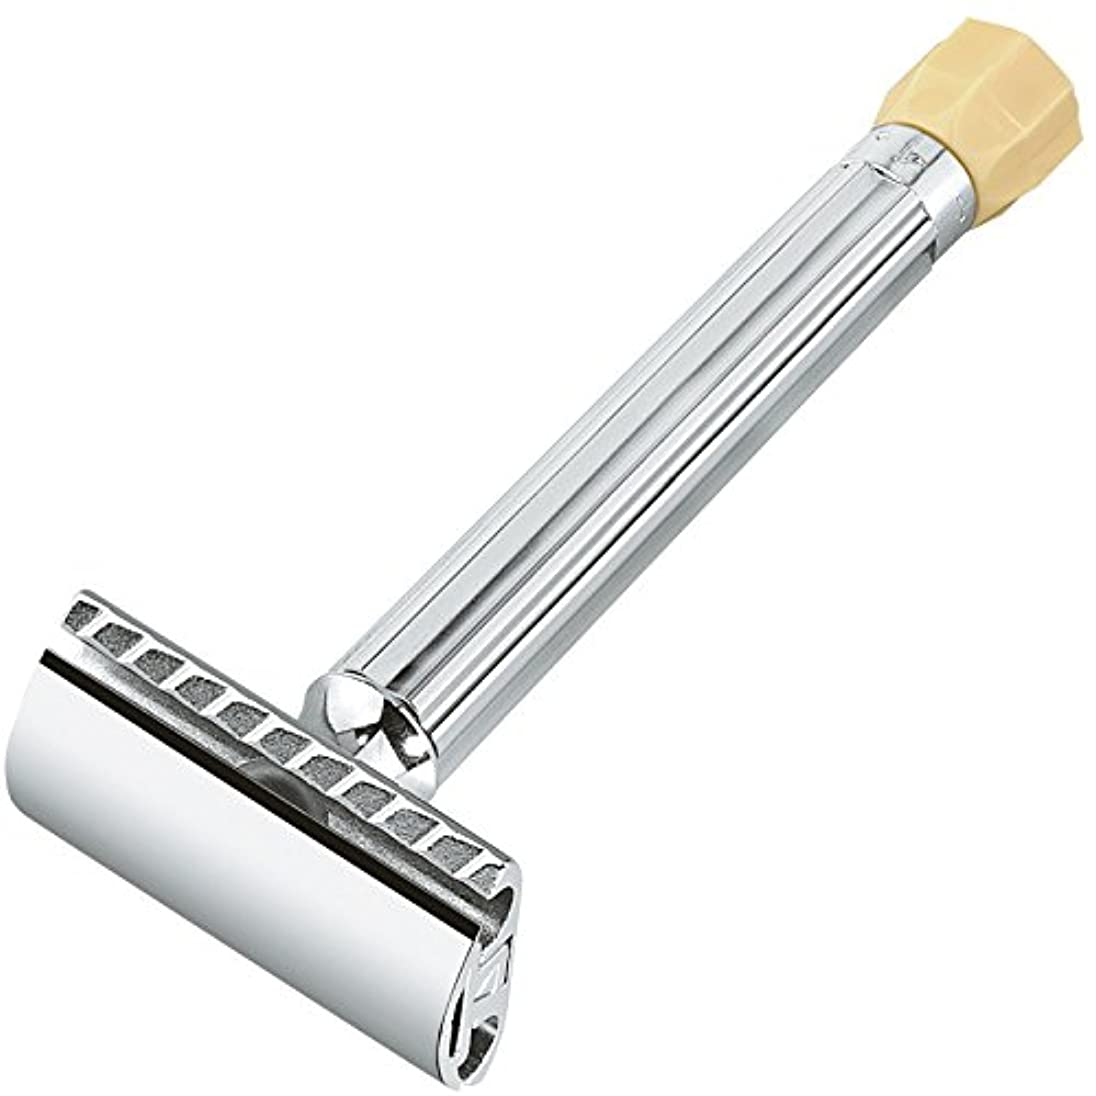 望みマイルストーンスポーツをするMERKUR Solingen - Safety razor, long handle, blade regulation, 90510001